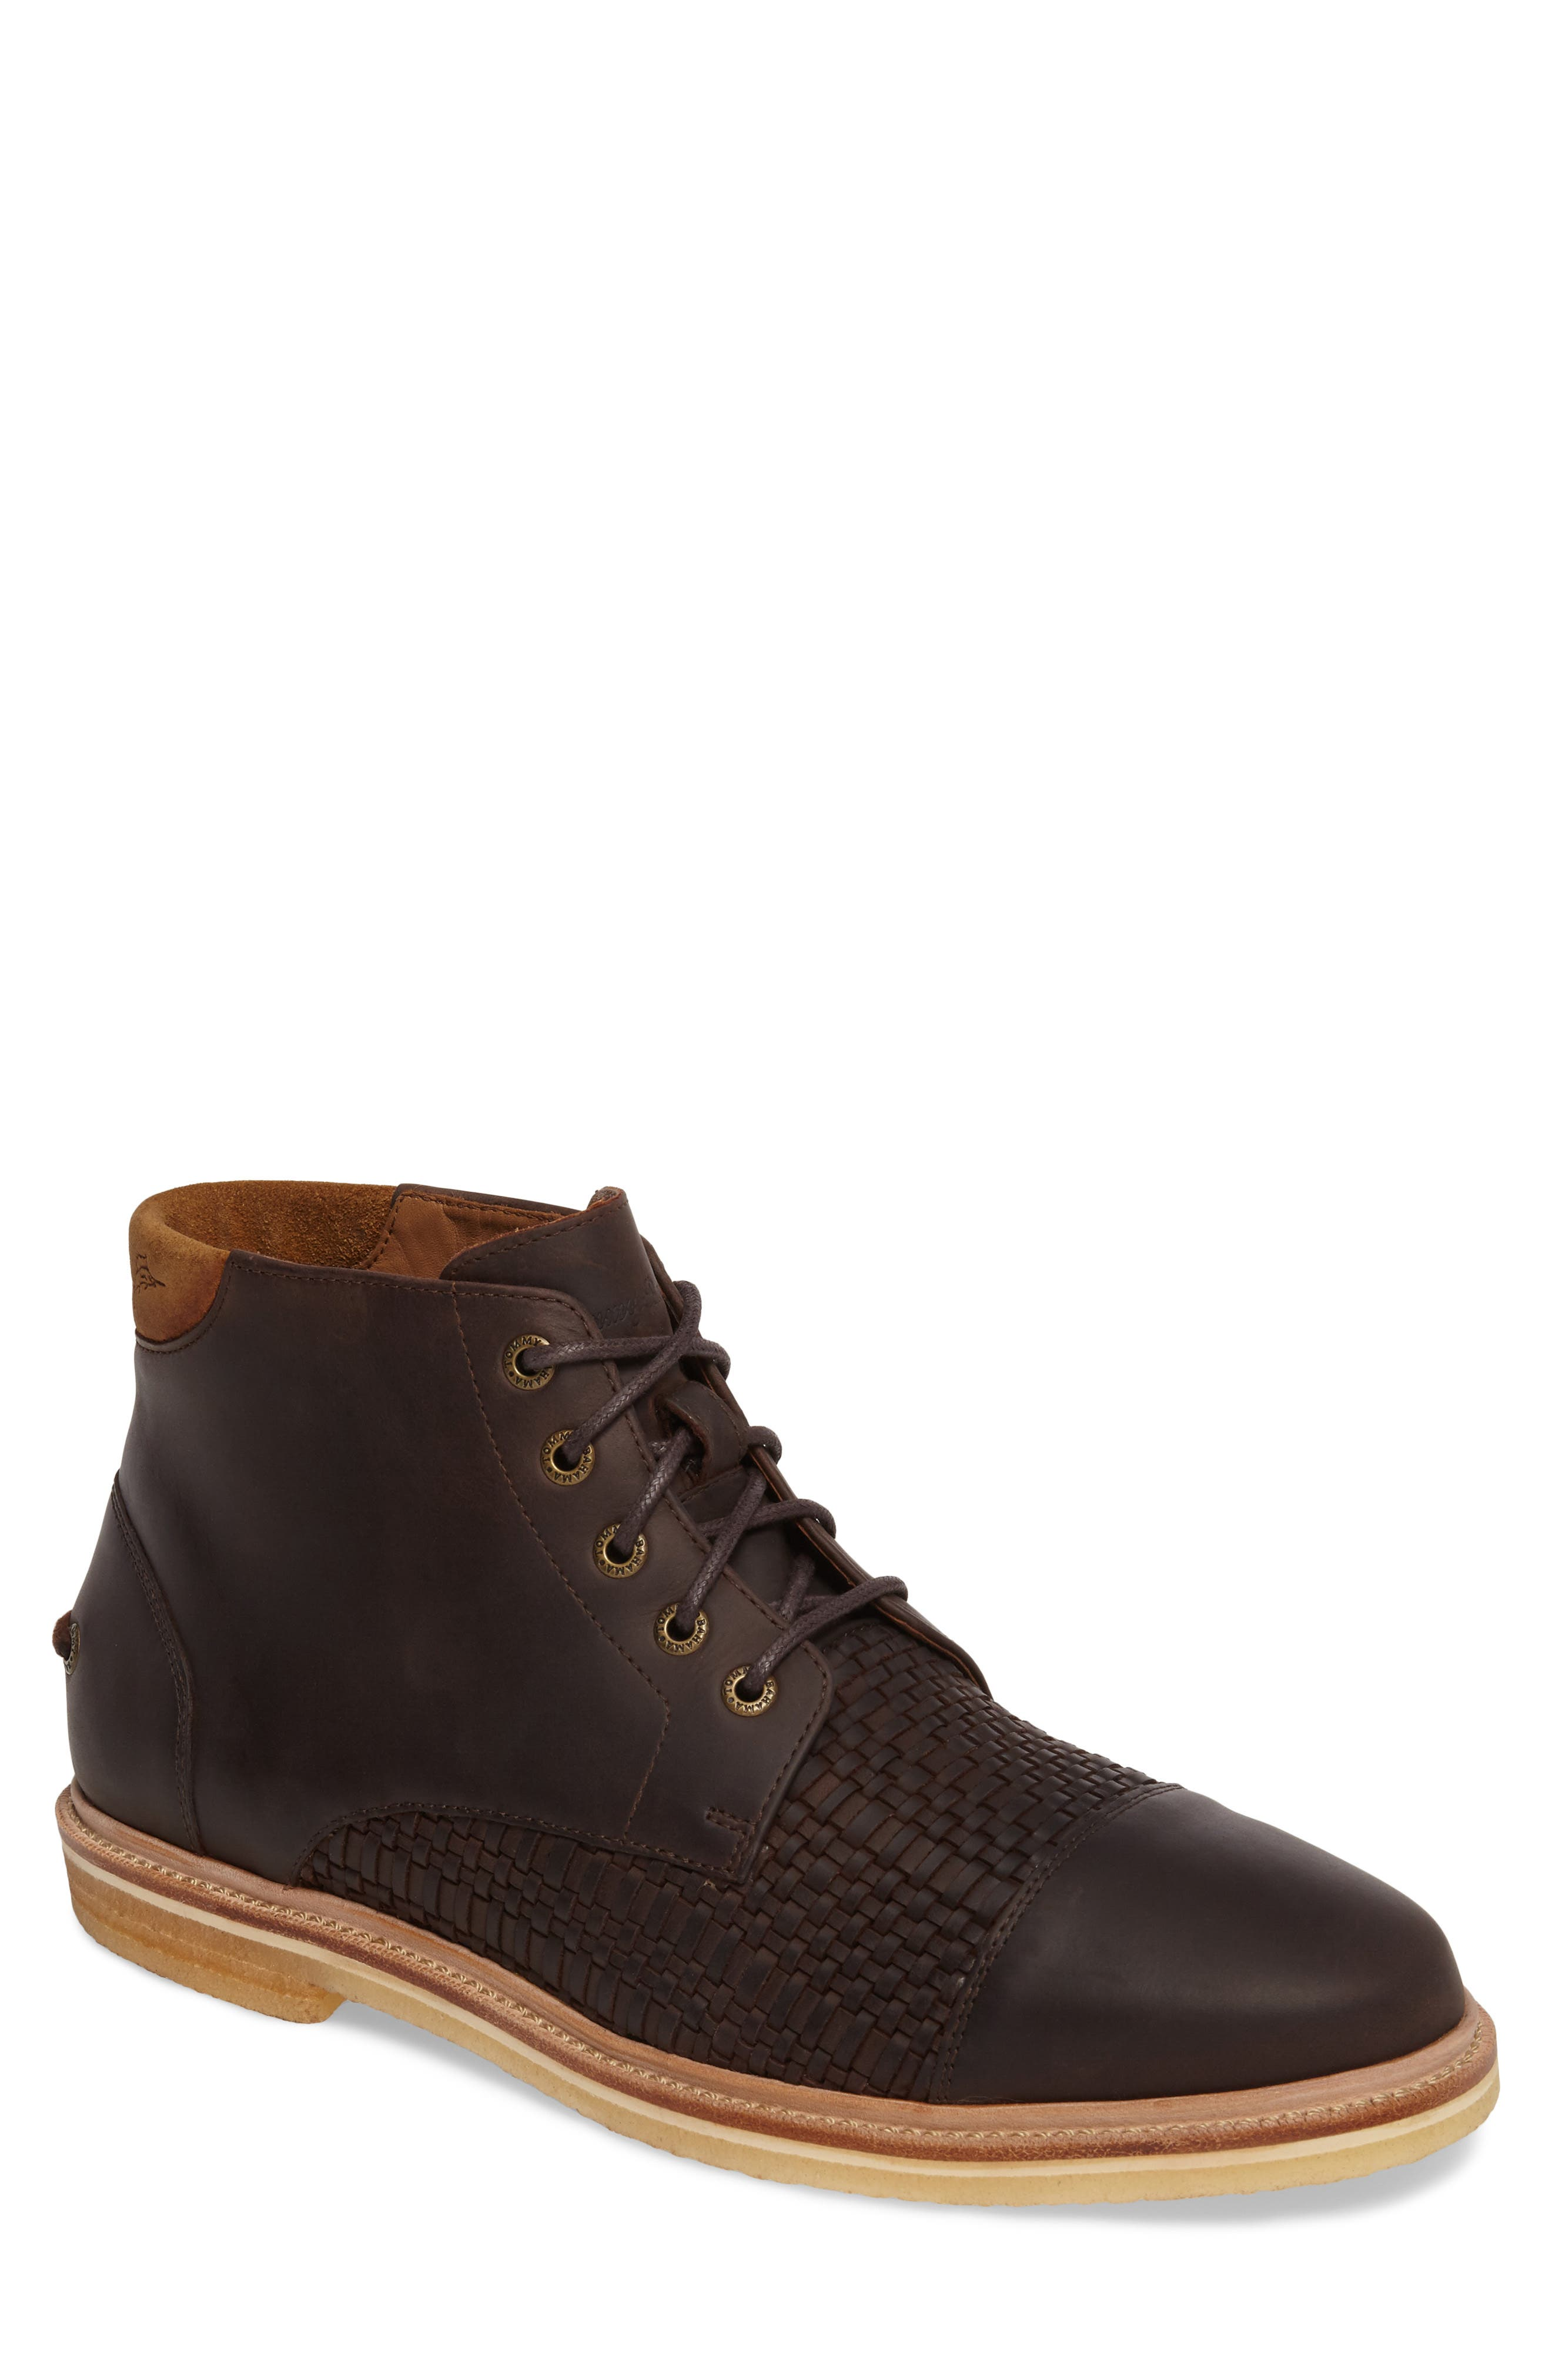 Argon Blooms Cap Toe Boot,                         Main,                         color, Brown Leather